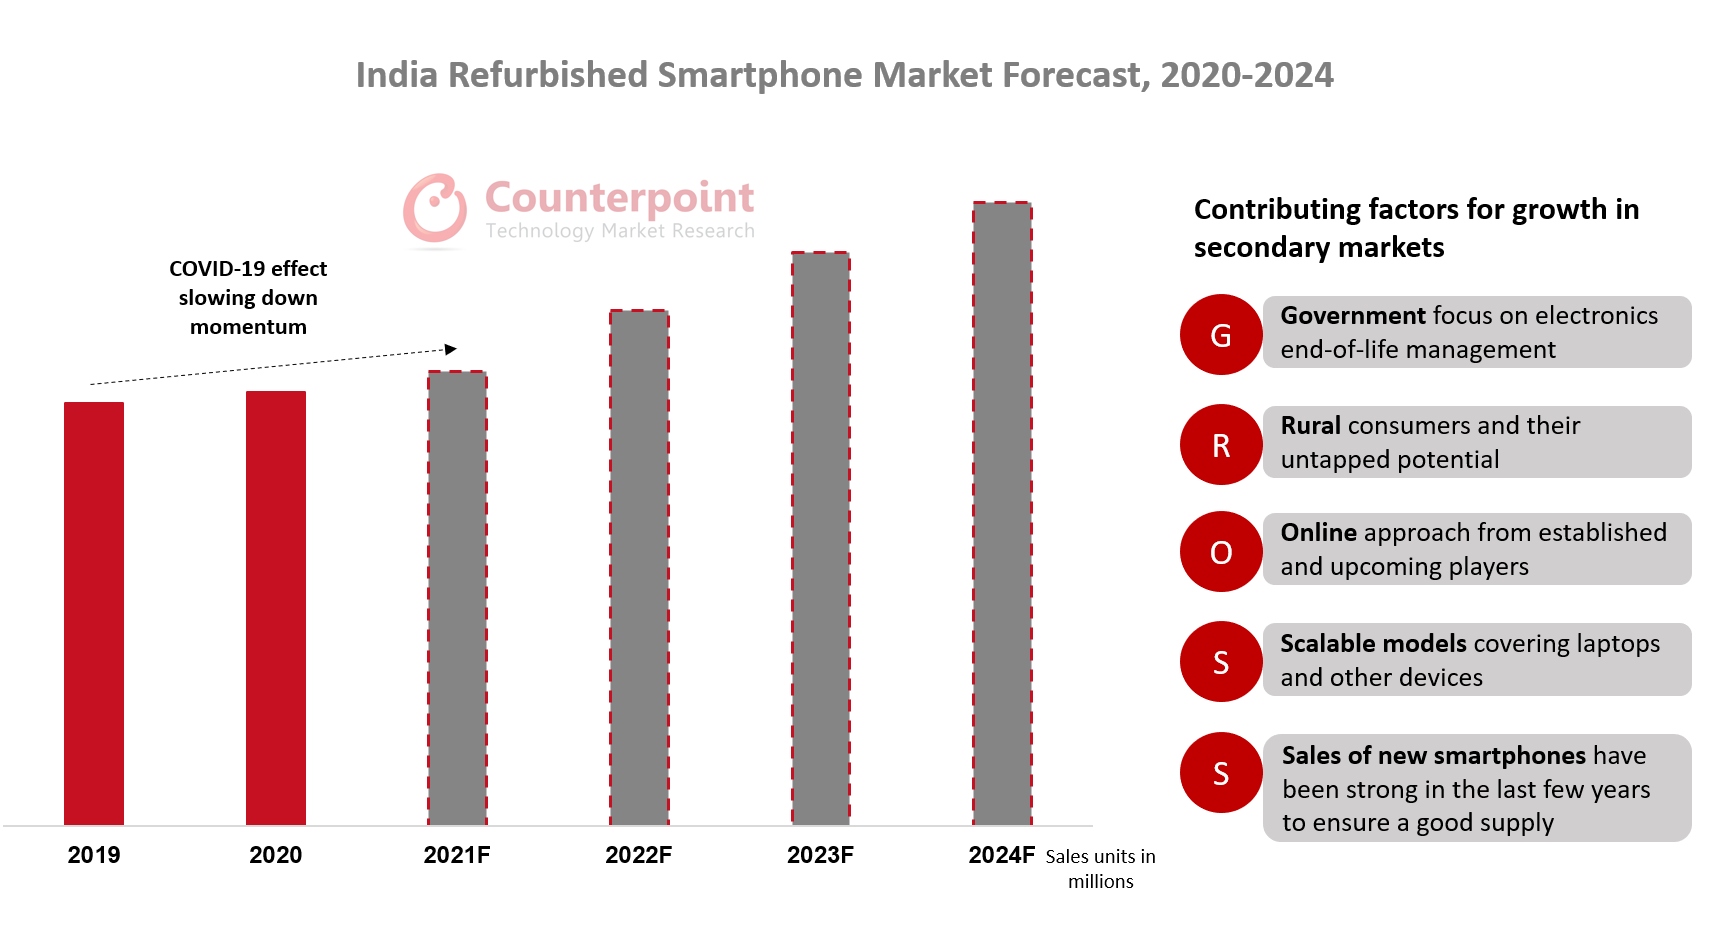 Counterpoint Research India Refurbished Smartphone Market Forecast 2020 - 2024